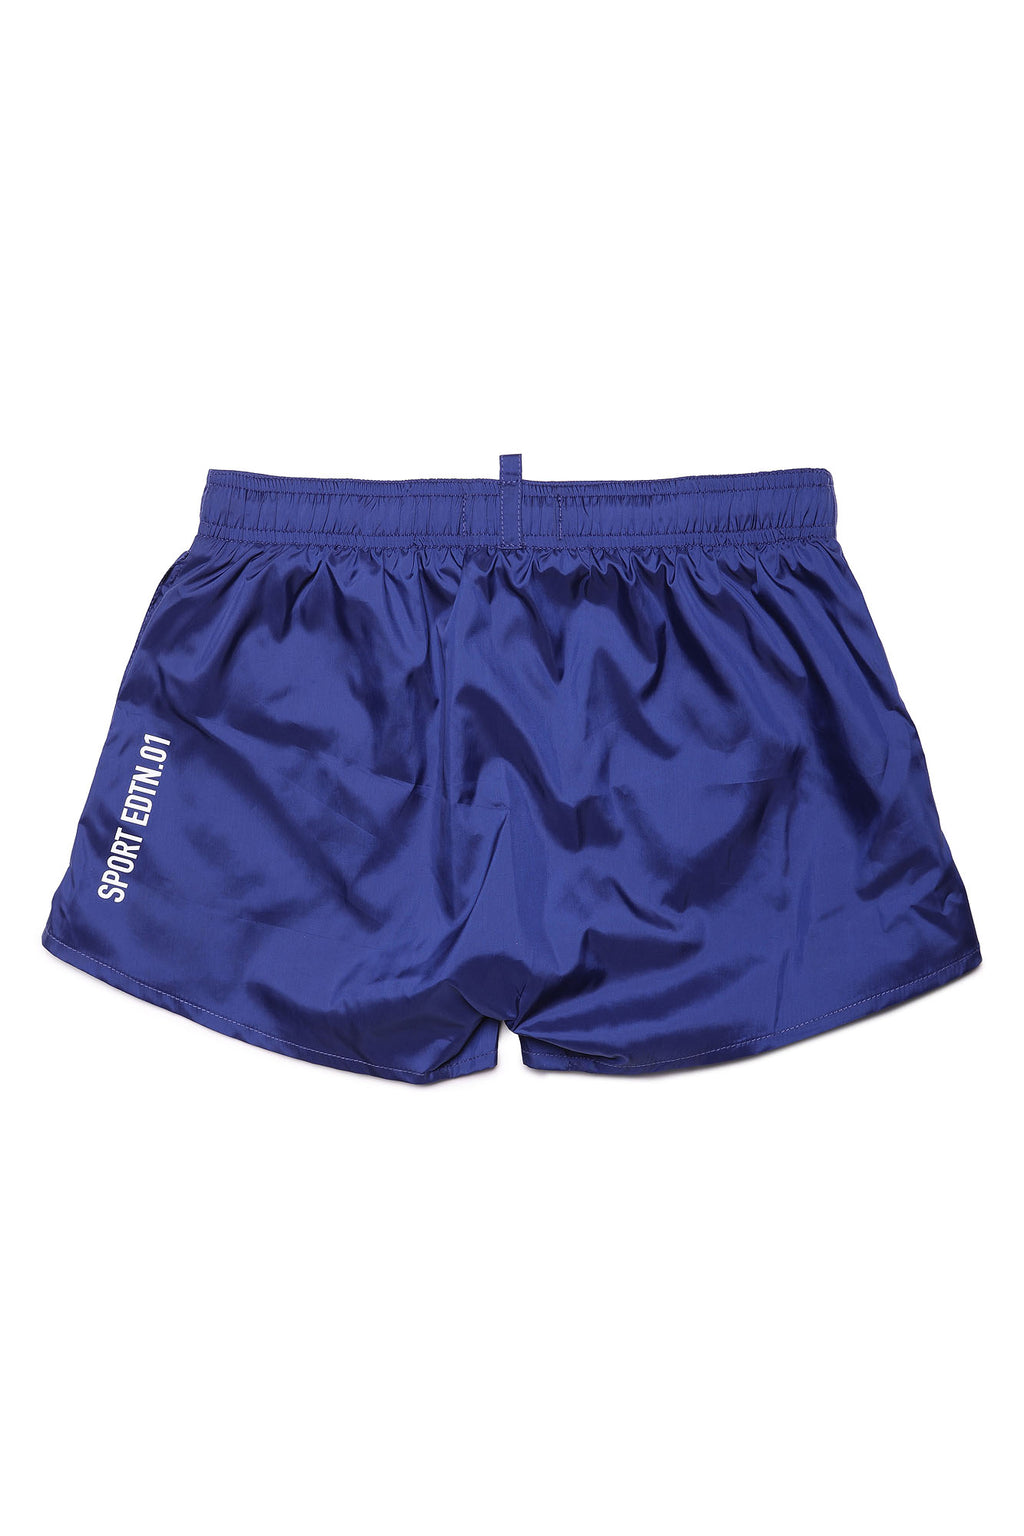 Short de Bain Marine-DSQUARED2-Maralex Paris (4446371545151)